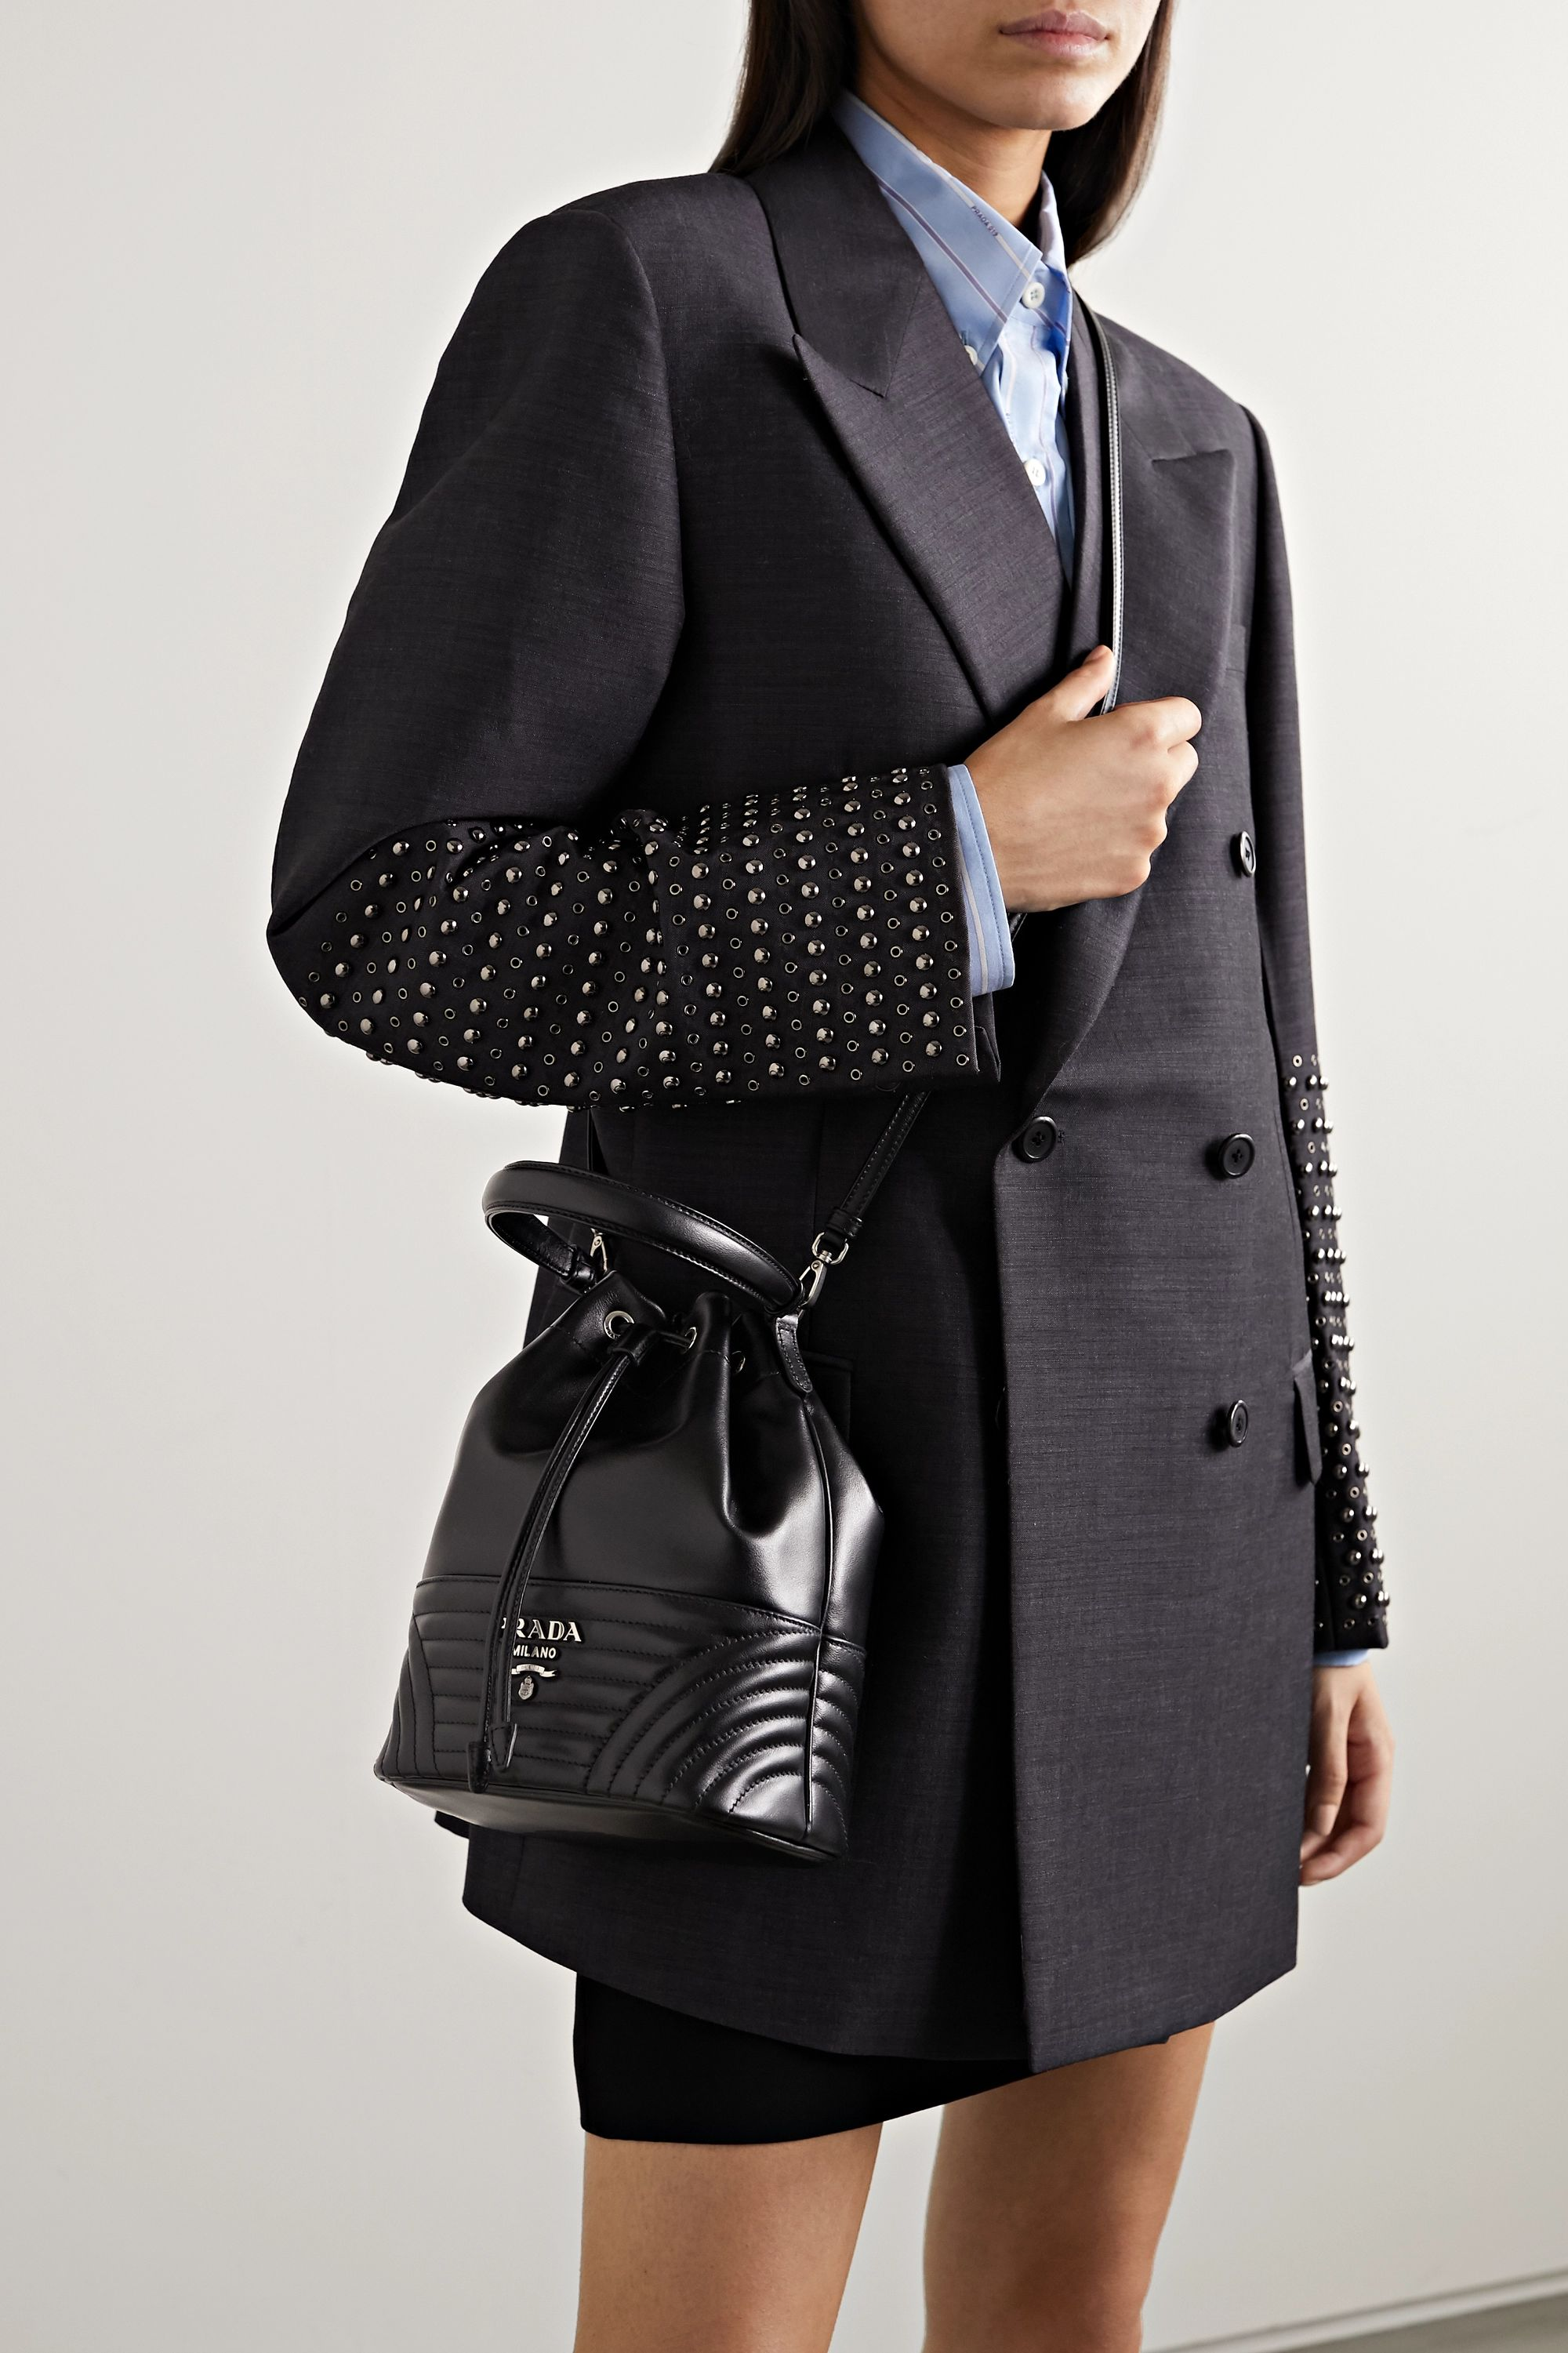 Prada Diagramme quilted leather bucket bag